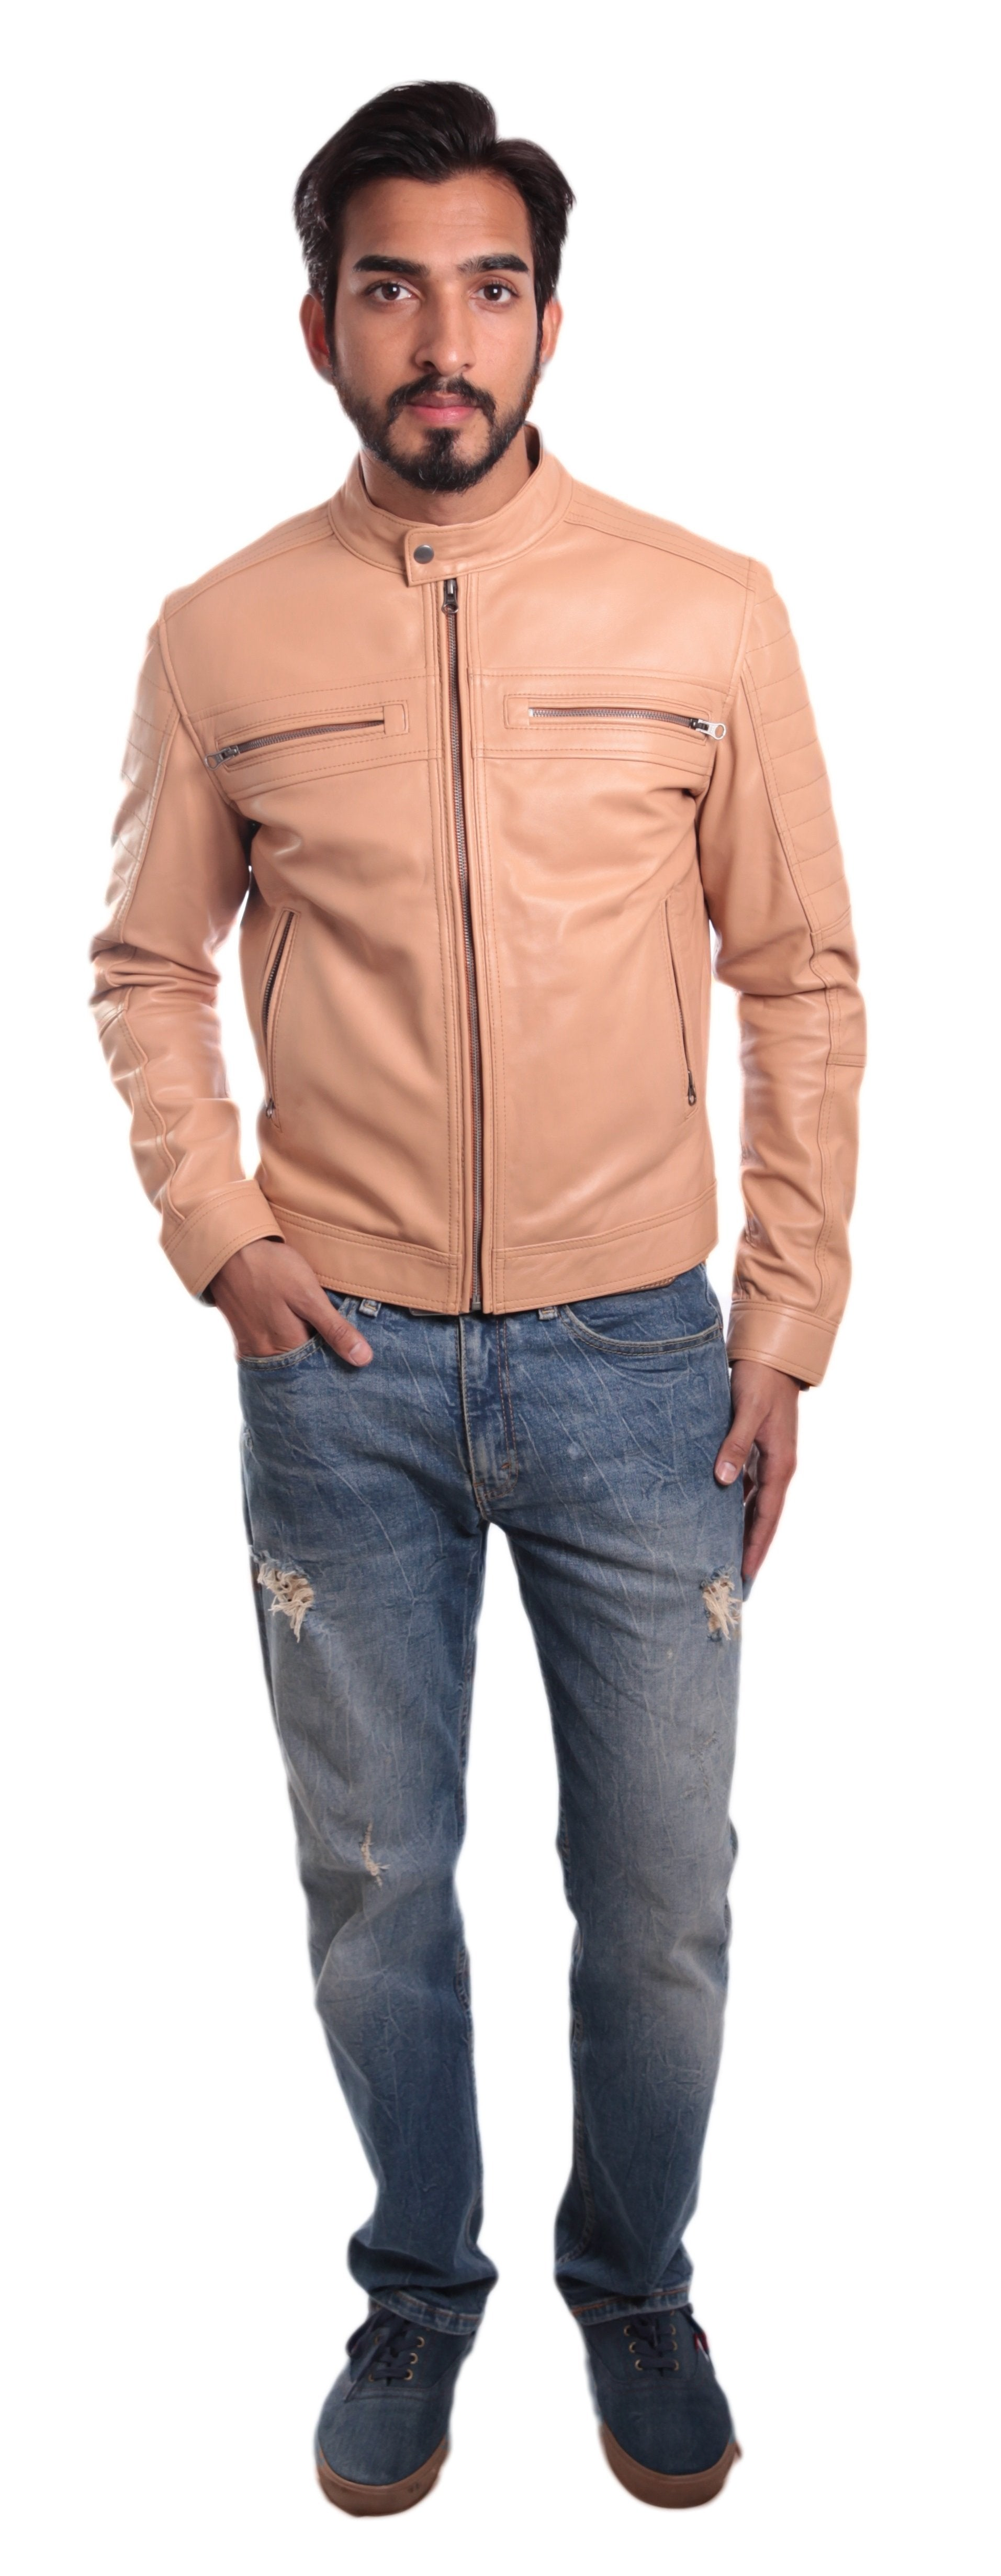 Leather Jacket - Men's Charles Beige Premium Leather Jacket